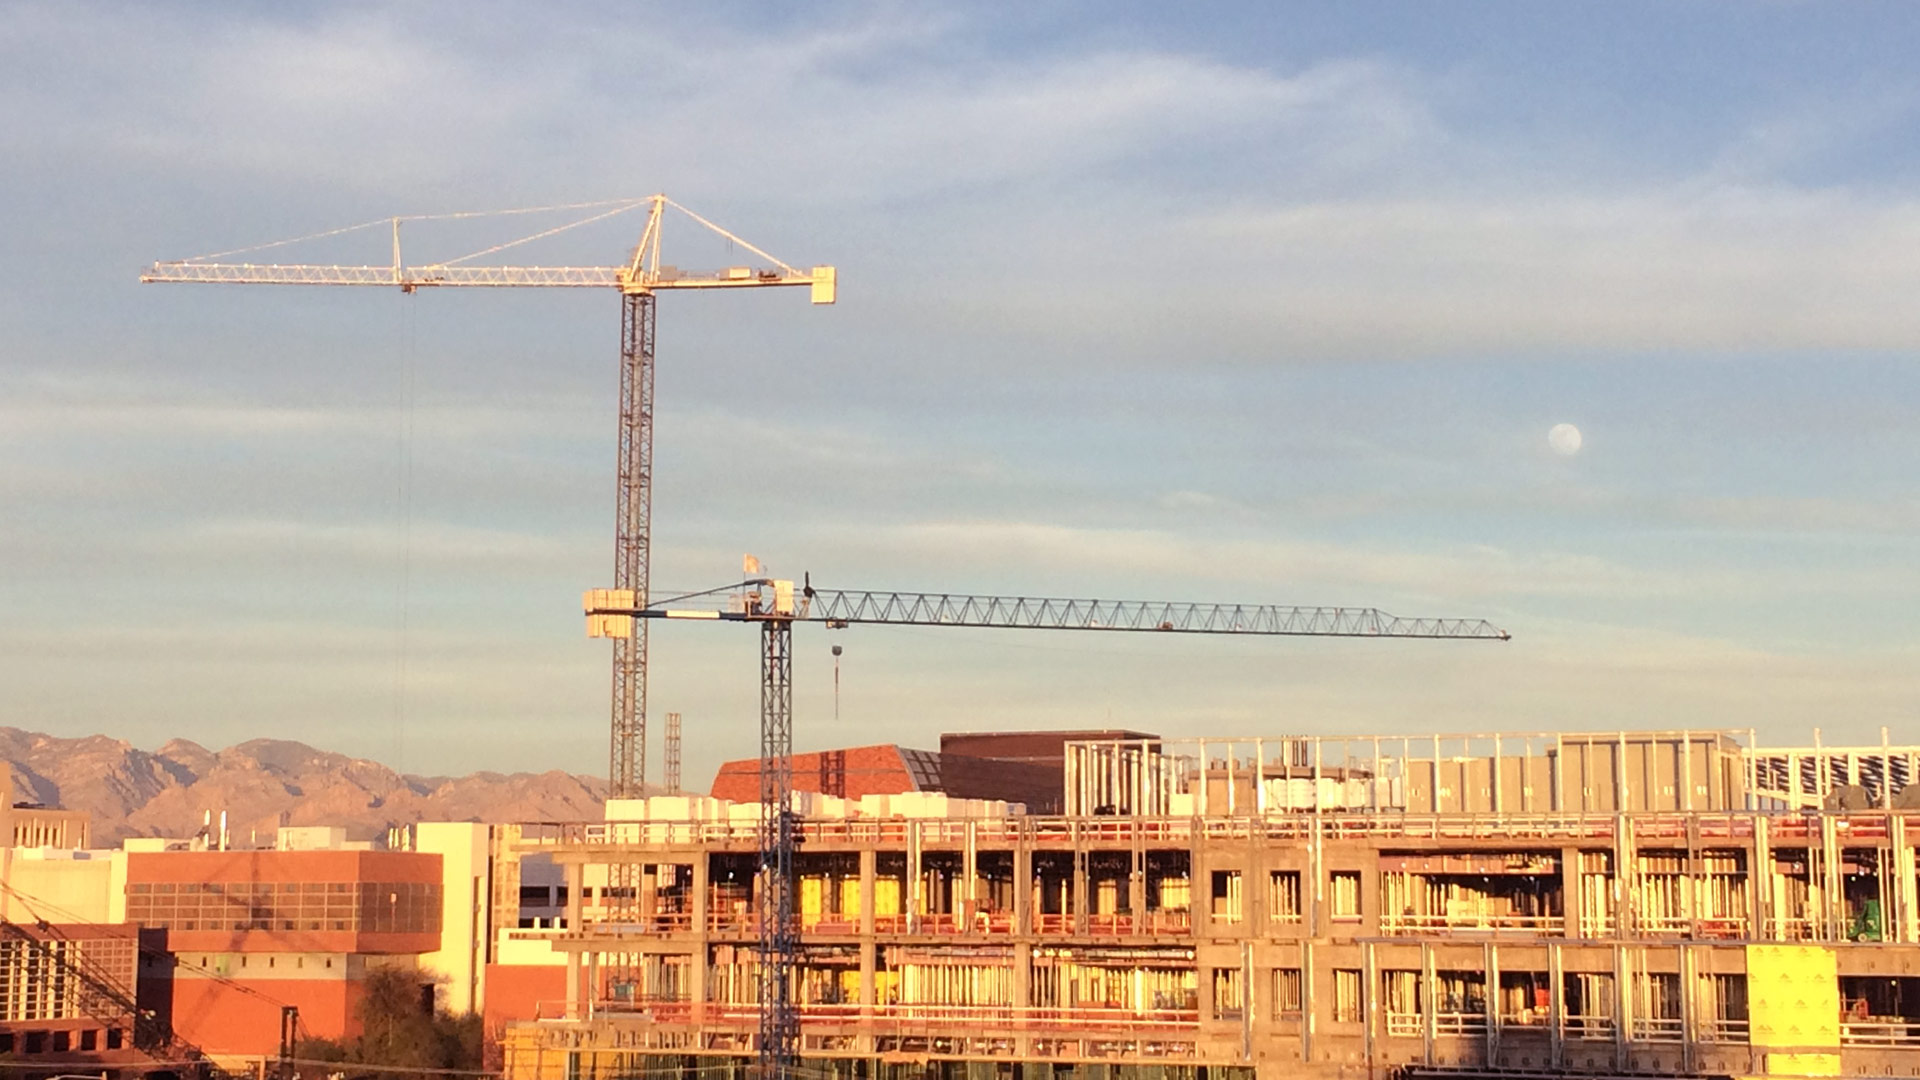 Cranes tower over the construction site at Banner University Medical Center, February 2017.